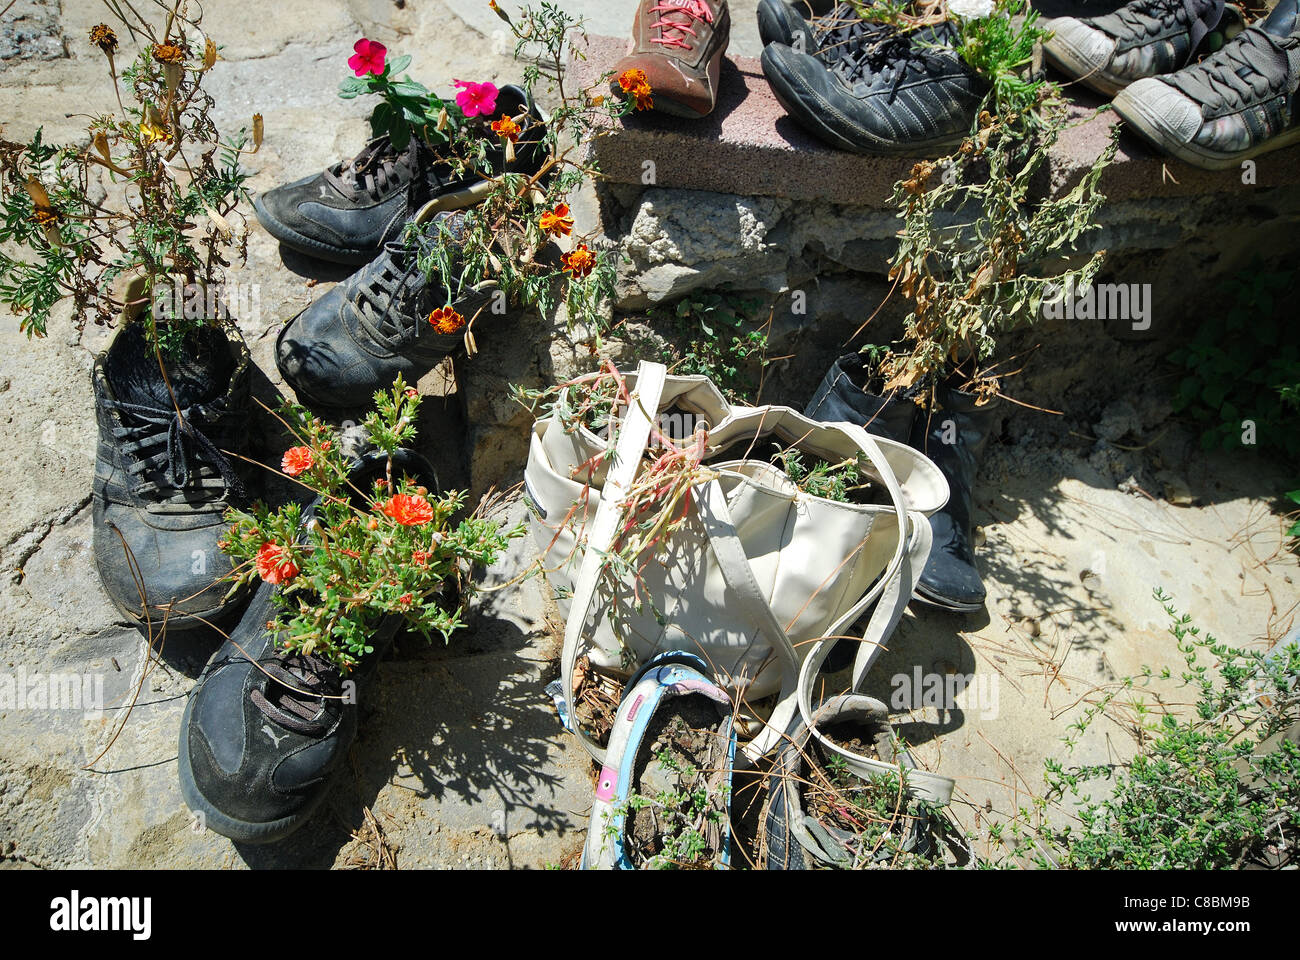 Old shoes and a handbag creatively recycled as plant pots in a garden. 2011. - Stock Image